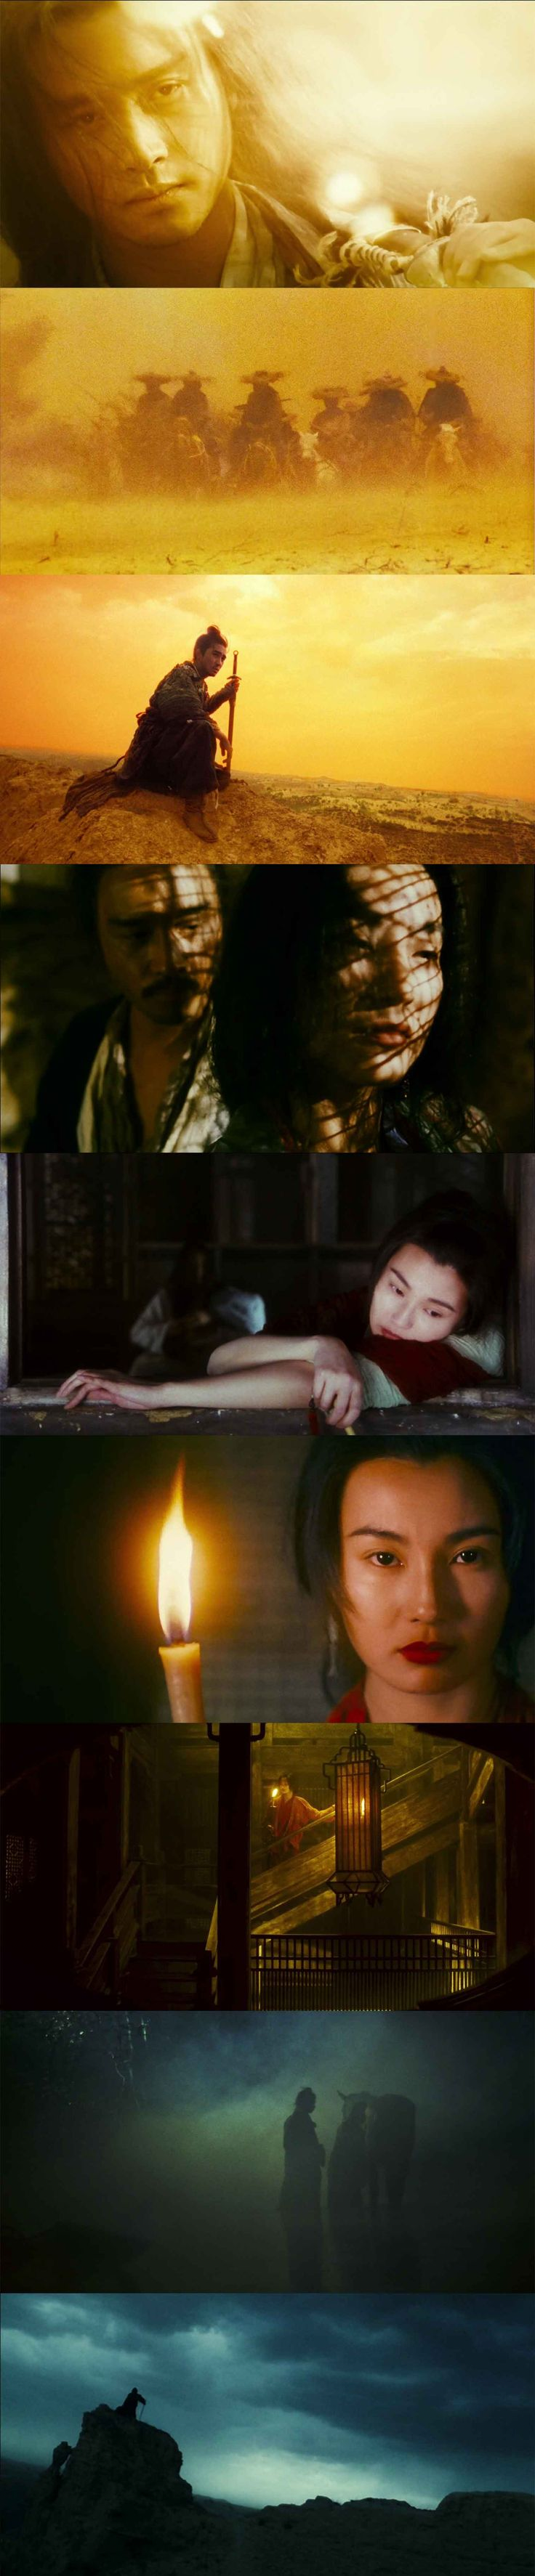 'Ashes of Time Redux' (Wong Kar Wai, 1994) Cinematography by Christopher Doyle